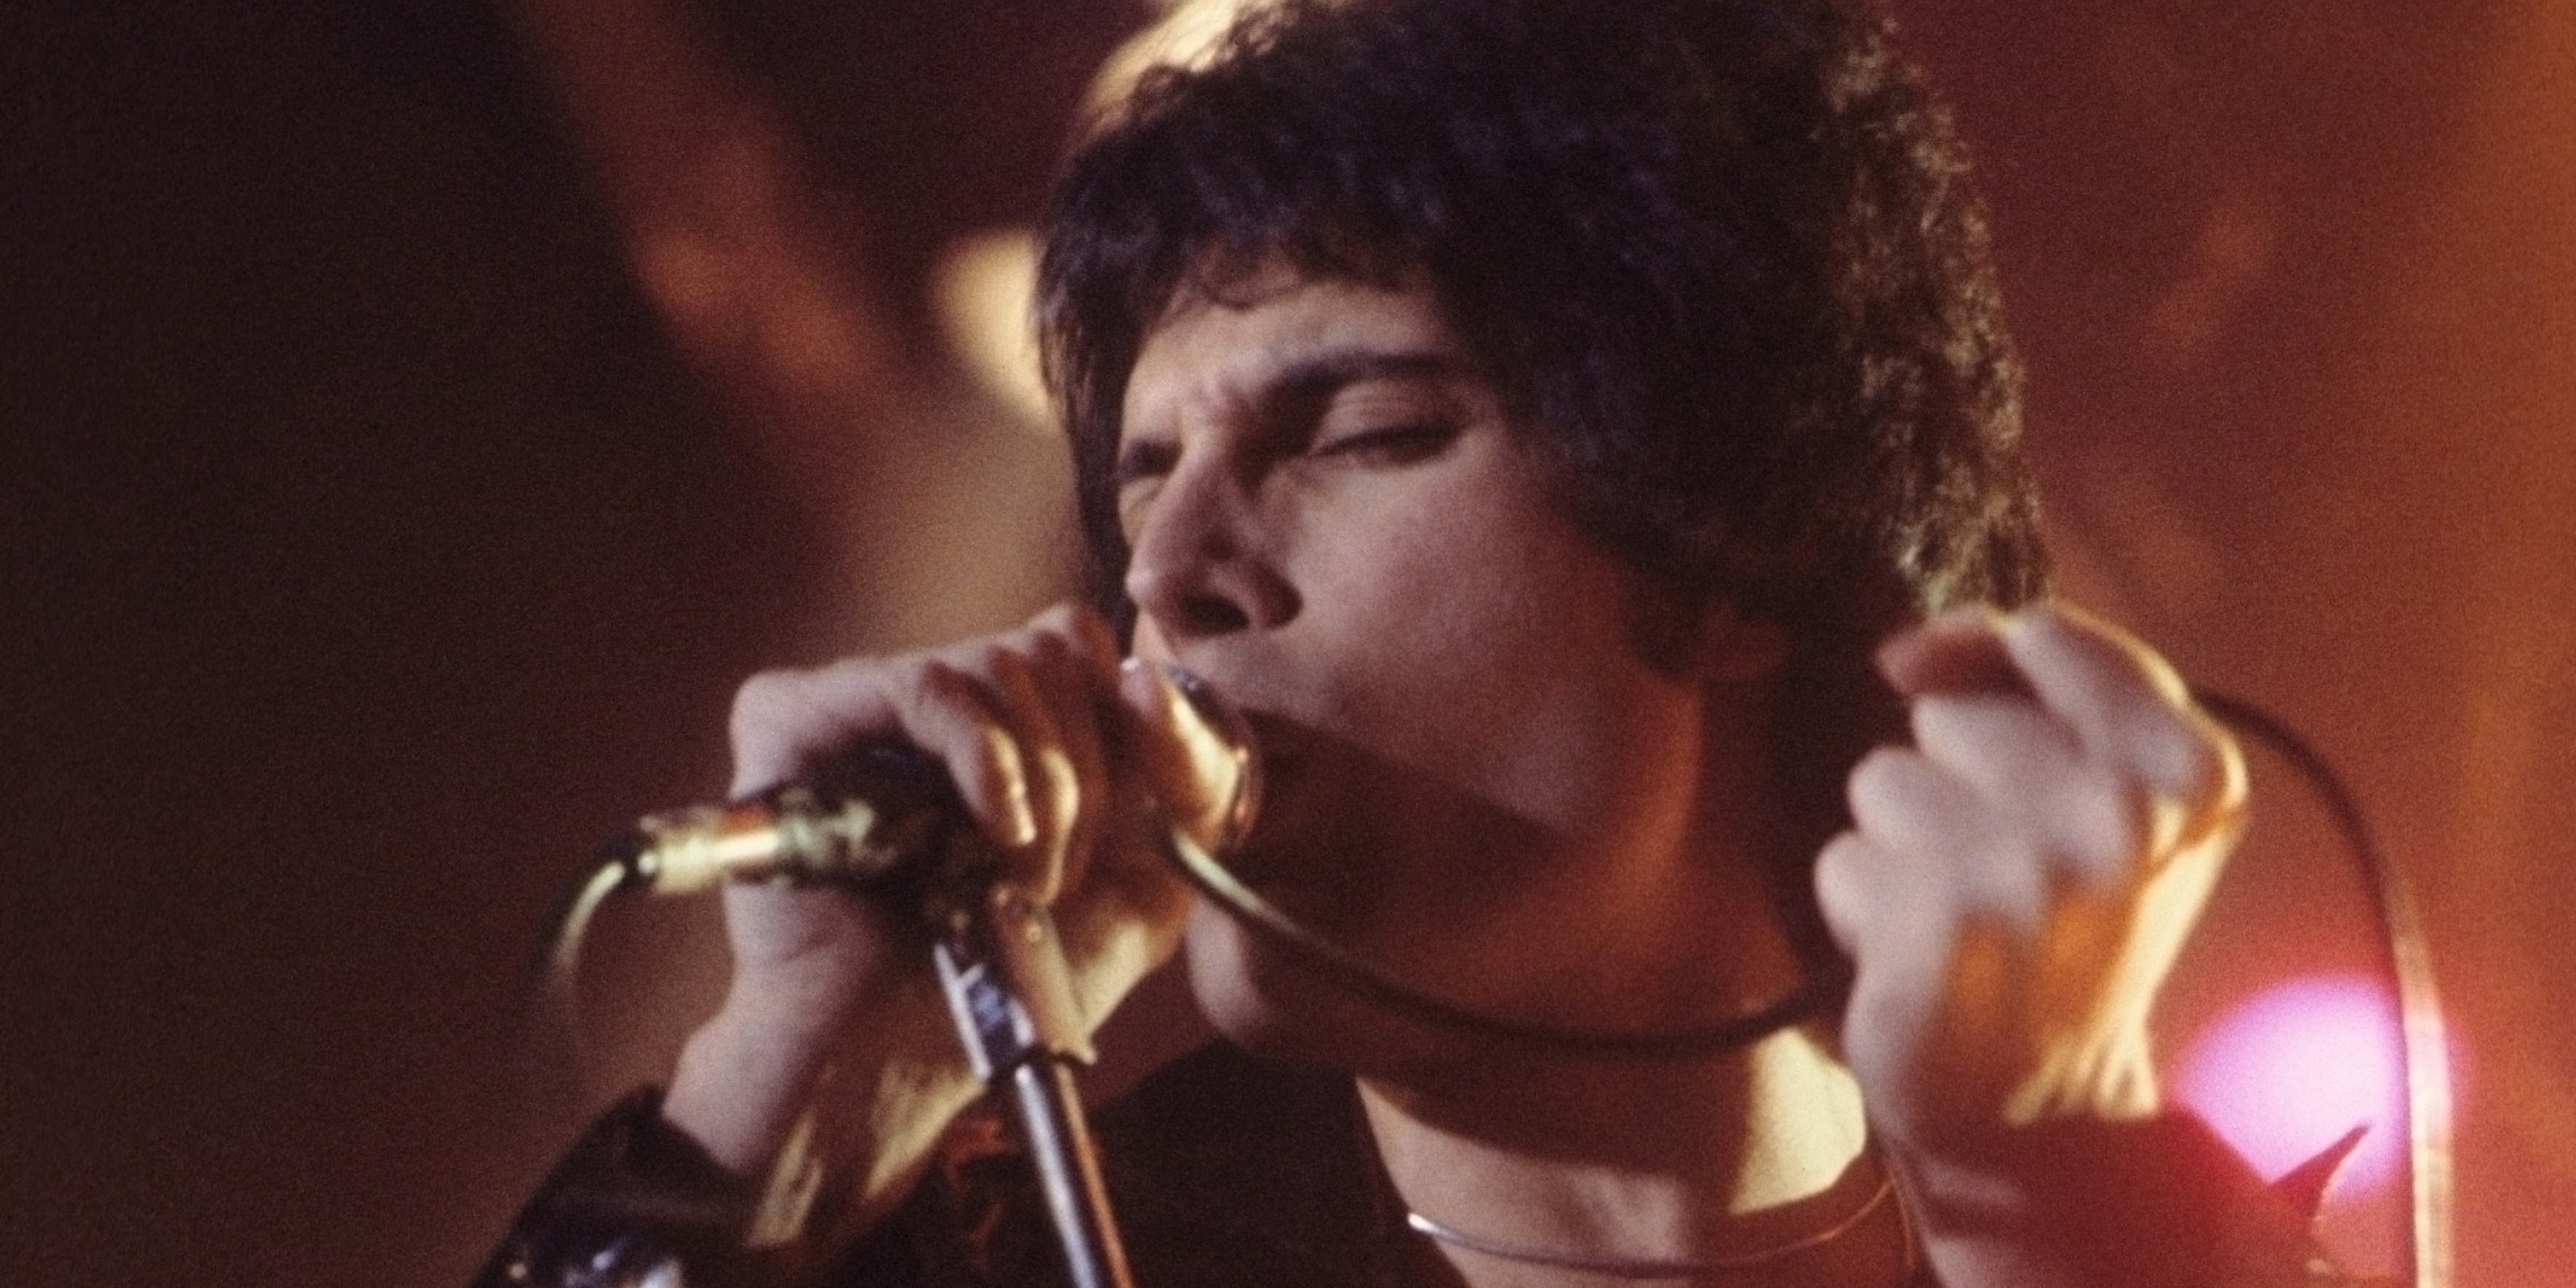 [Image description: Freddie Mercury, a man with curly hair, sings into a microphone with stage lighting around him.]